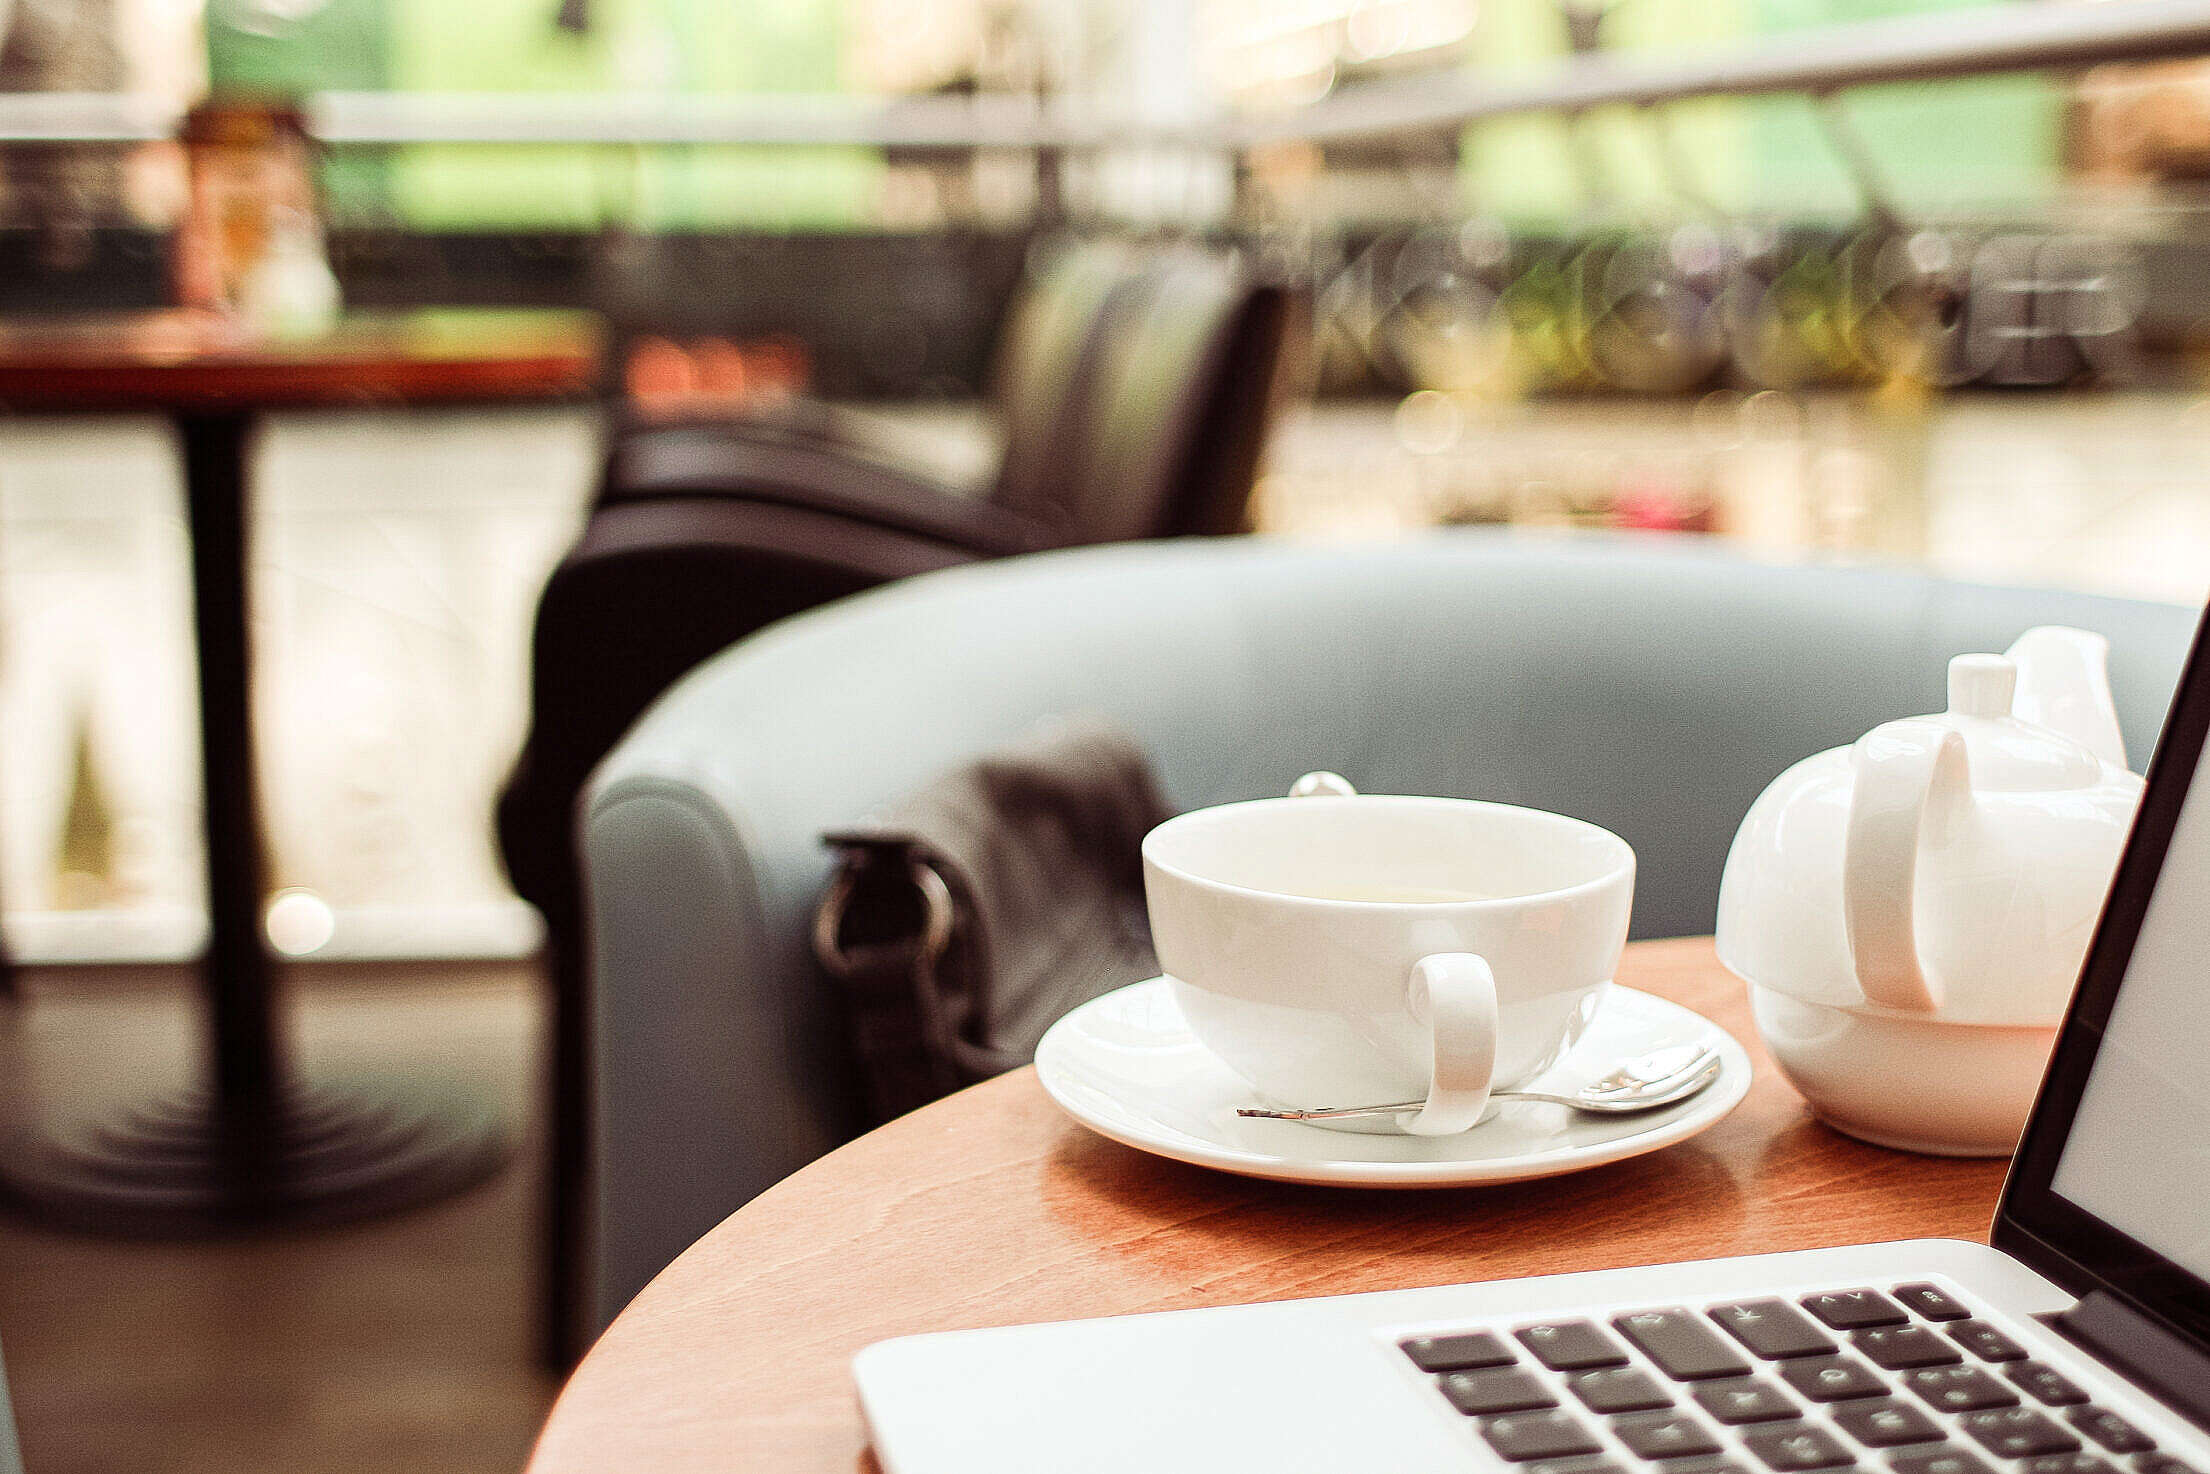 Working Remotely from a Cafe Free Stock Photo